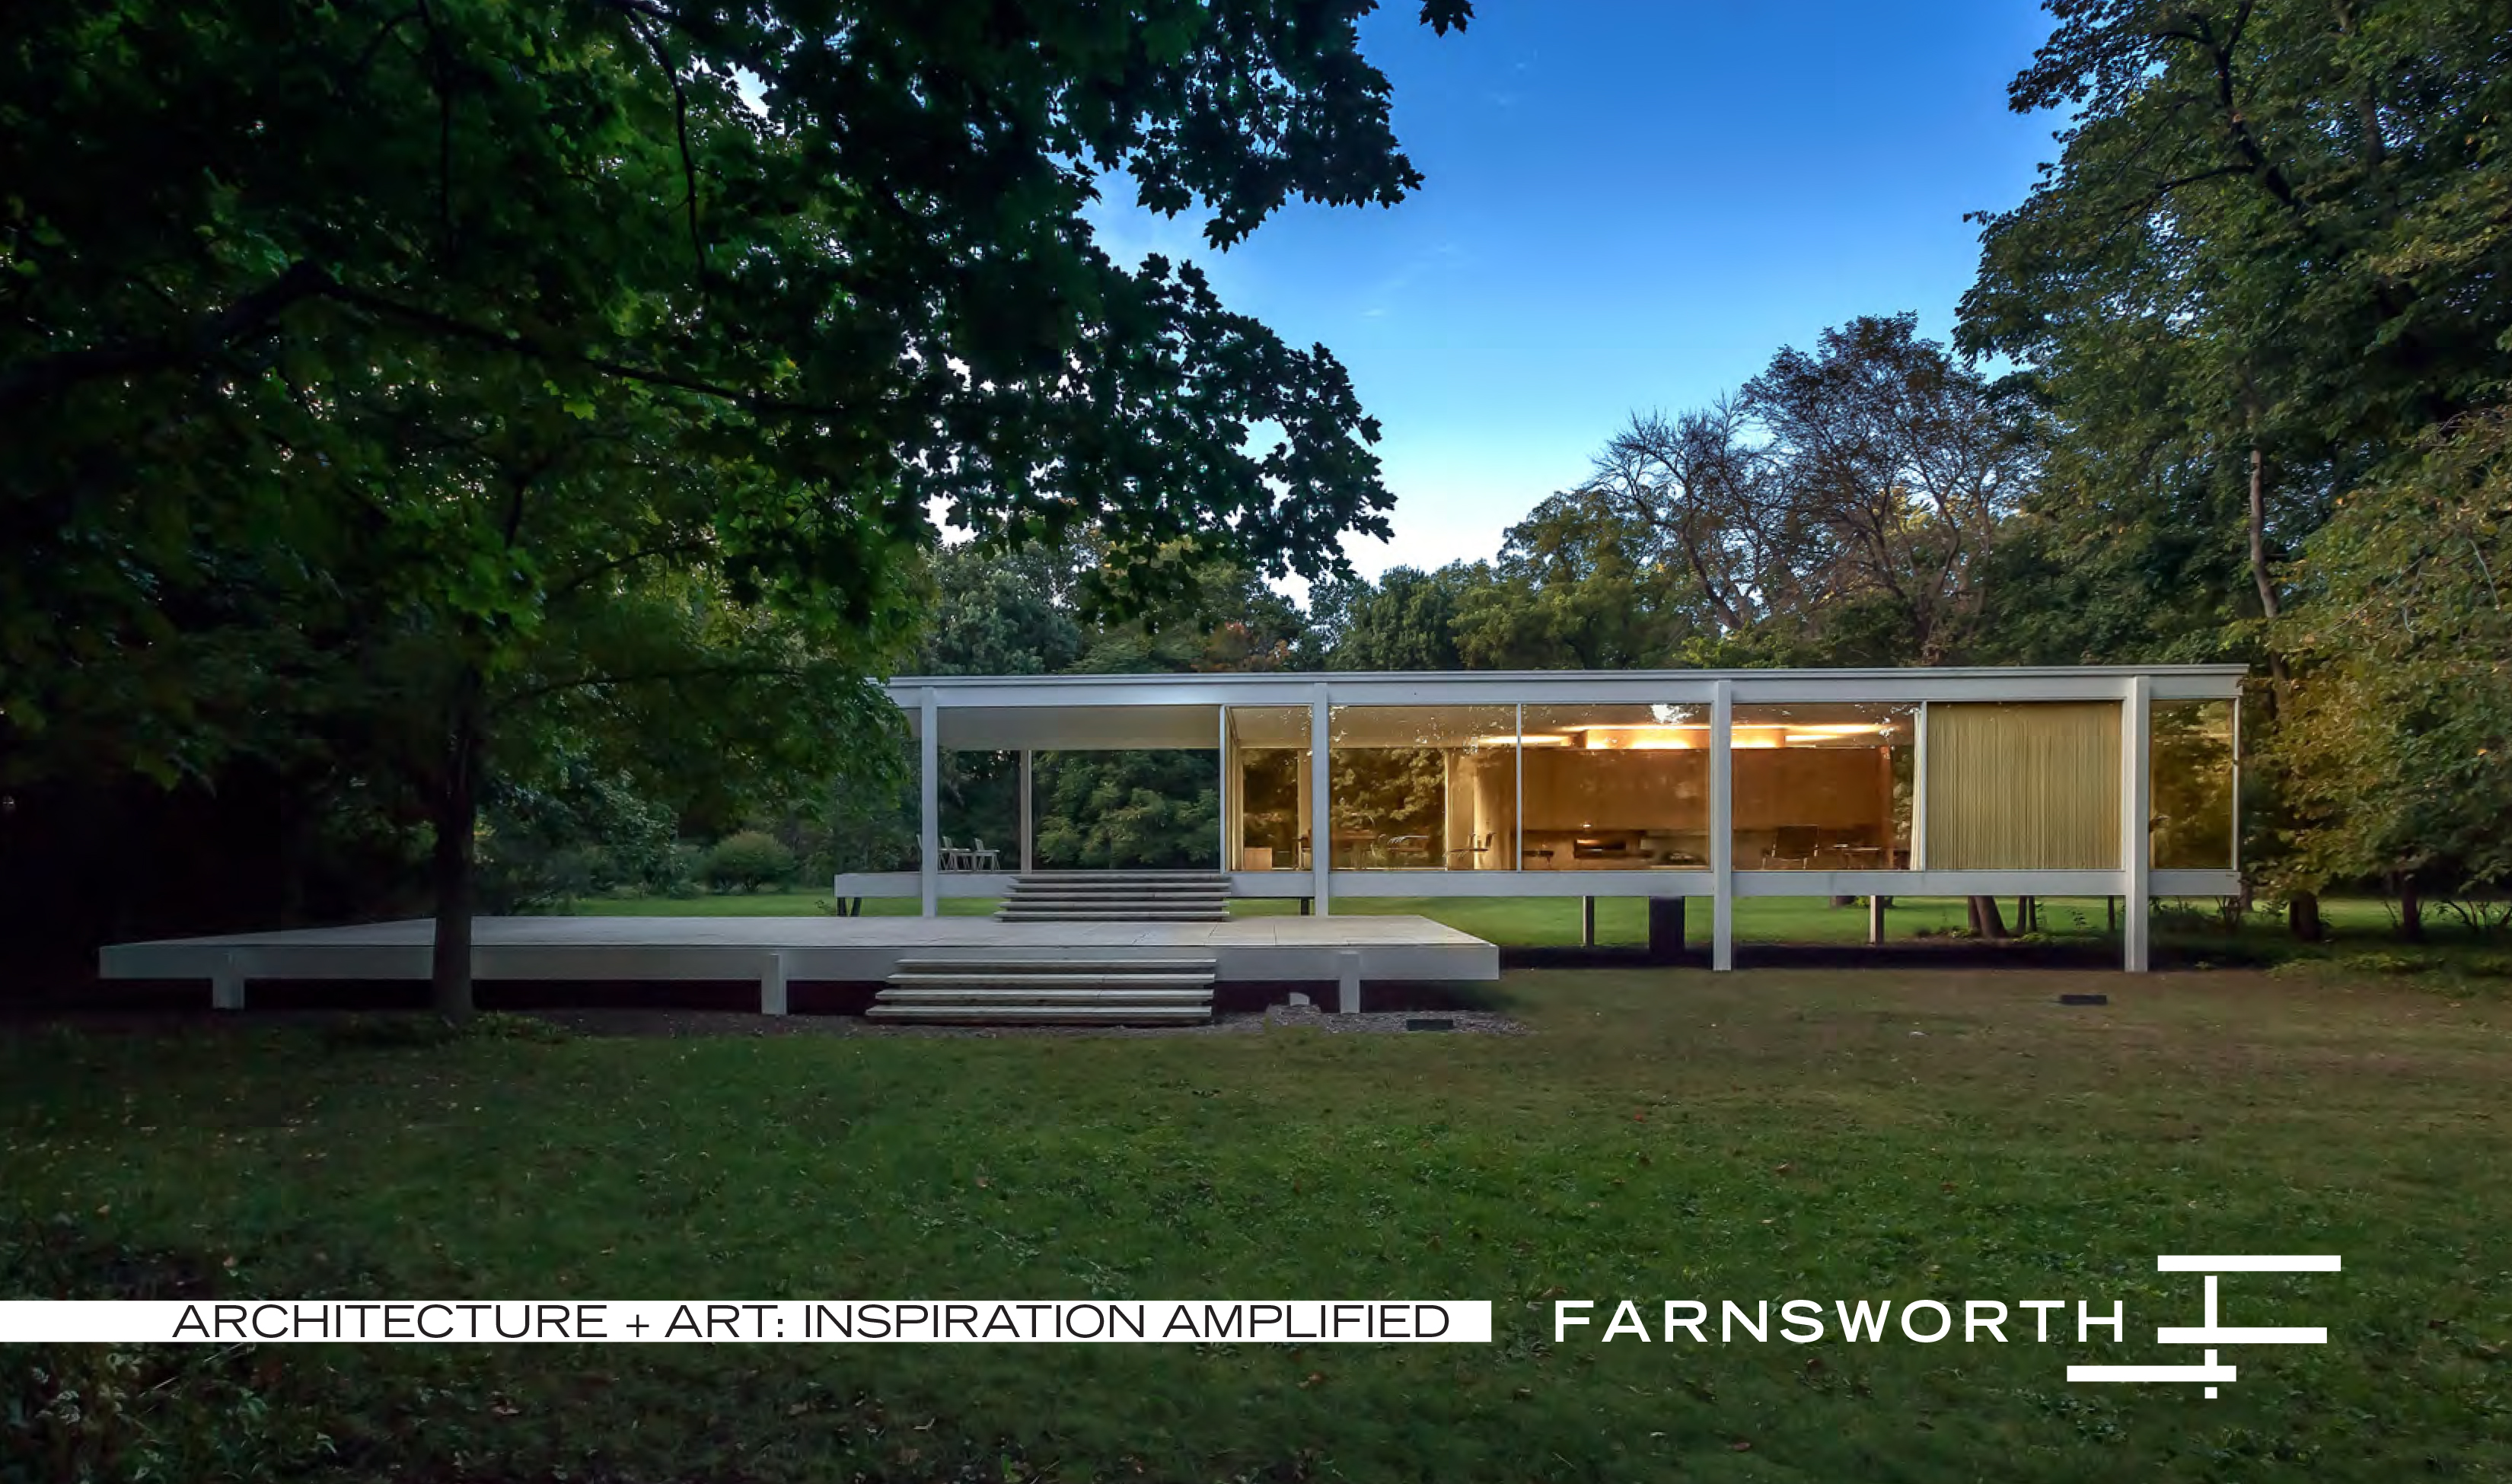 more information about architecture art inspiration amplified